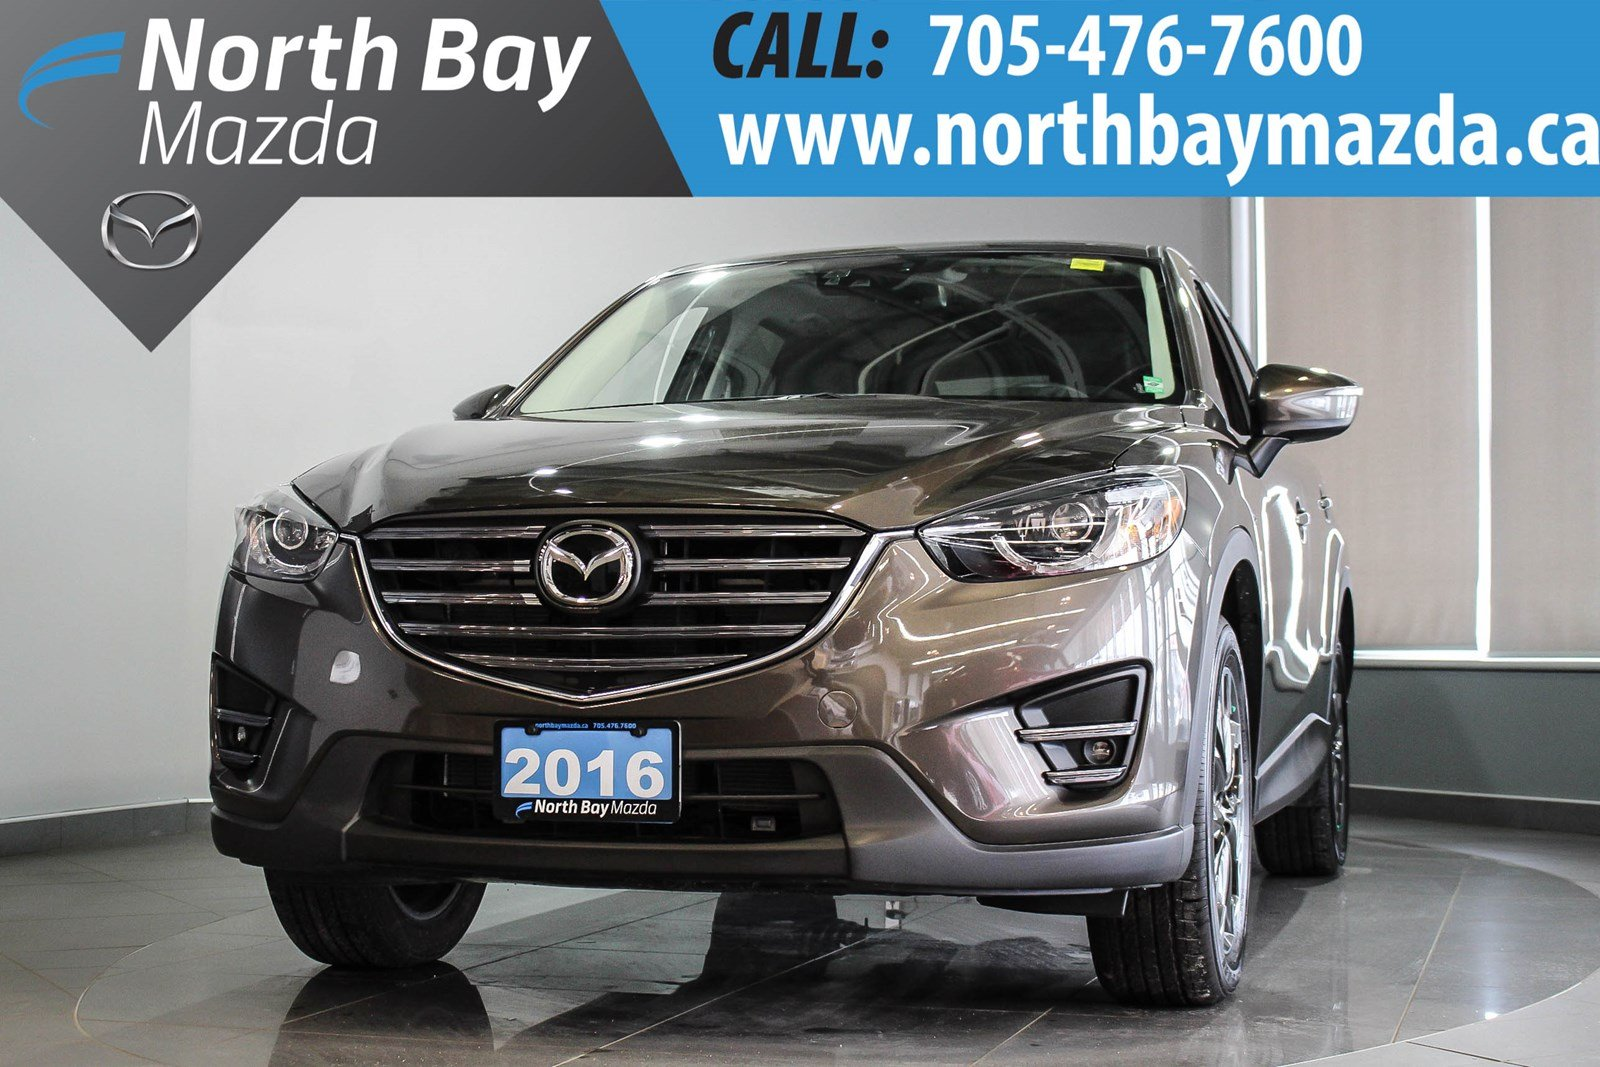 Pre-Owned 2016 Mazda CX-5 GT AWD - LEATHER INTERIOR - NEW NON-CURRENT GT